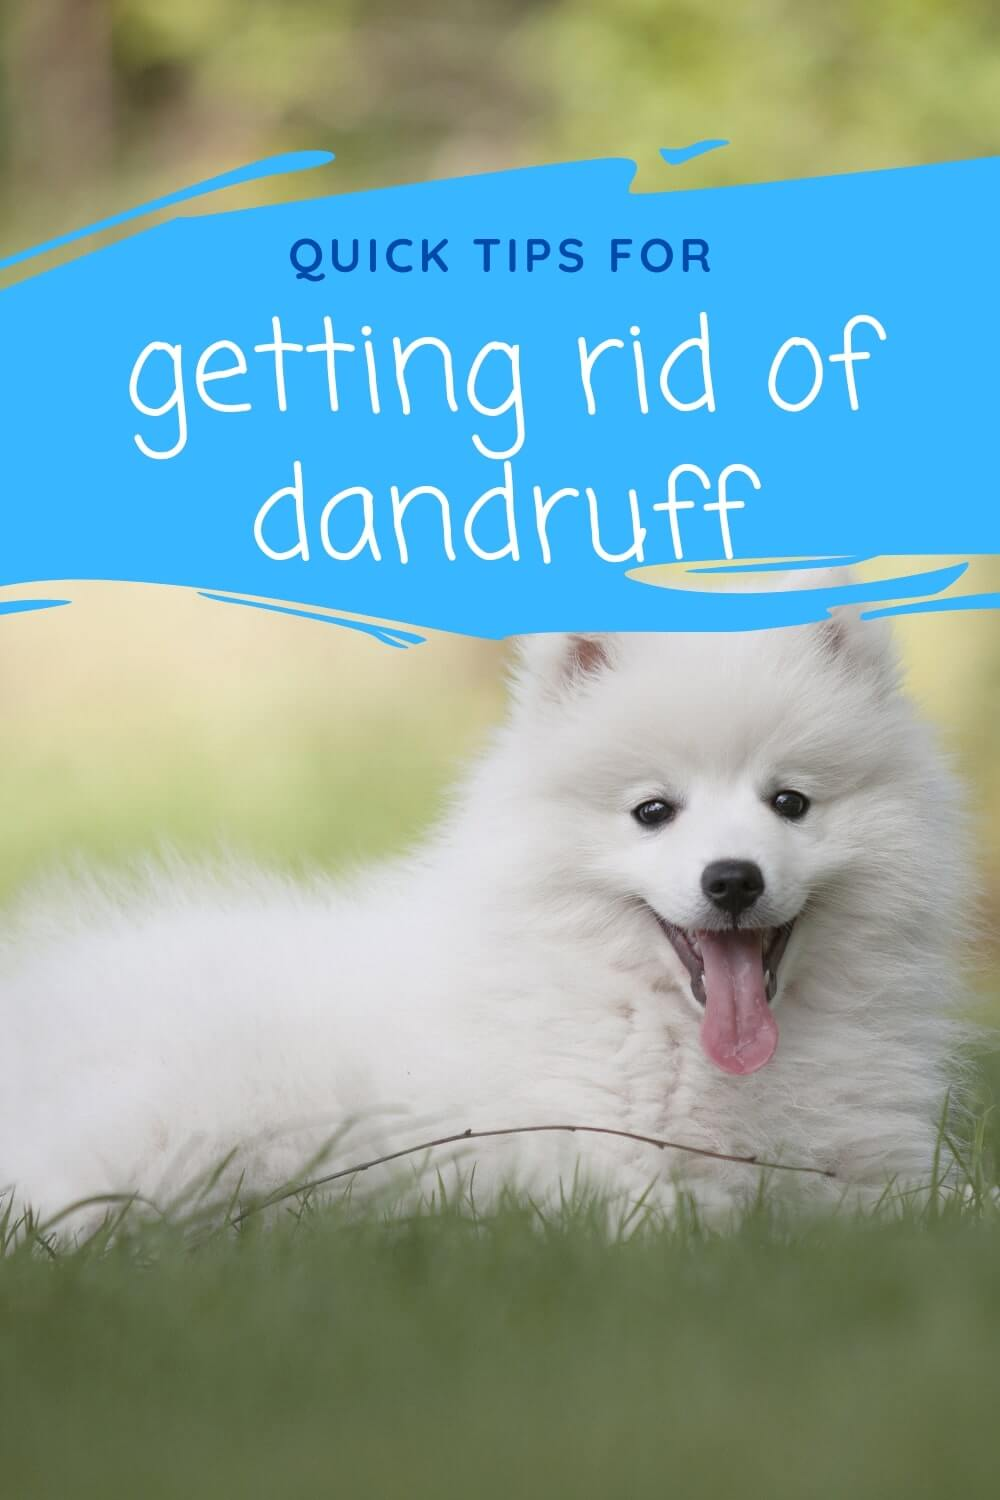 Quick tips for getting rid of dandruff on dogs.